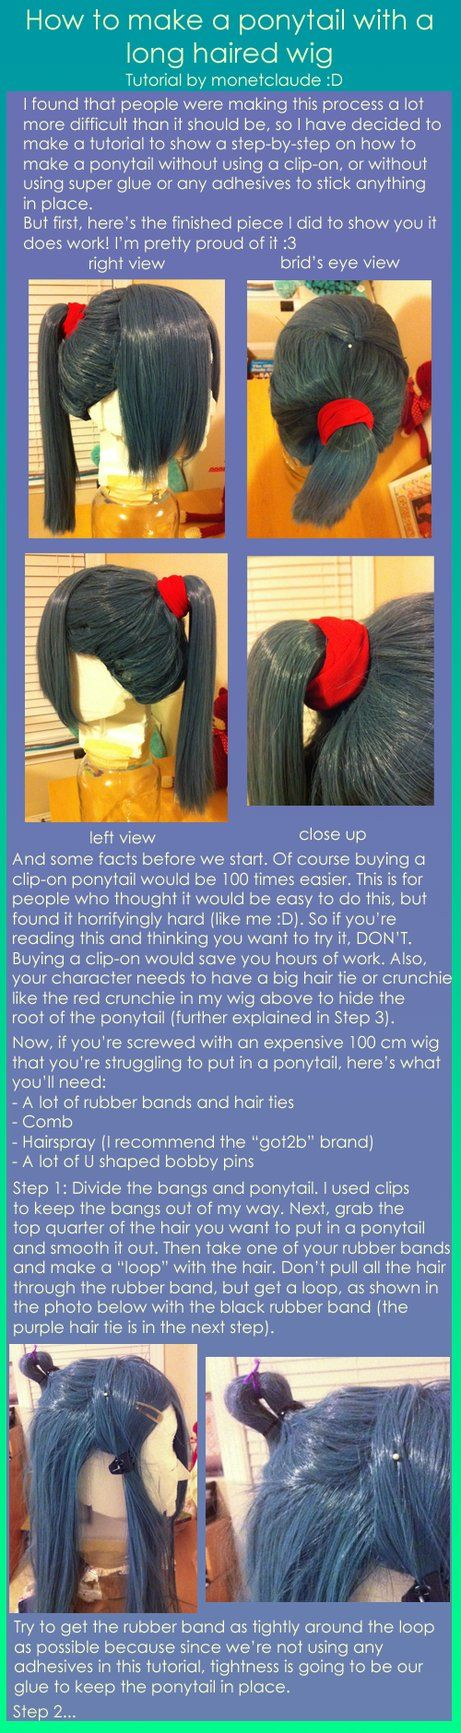 Here's a tutorial on how to make a ponytail with a long haired wig. It worked for mine (shown in the tutorial), so I've typed up instructions on how to do it. If you have any questions, don't hesit...